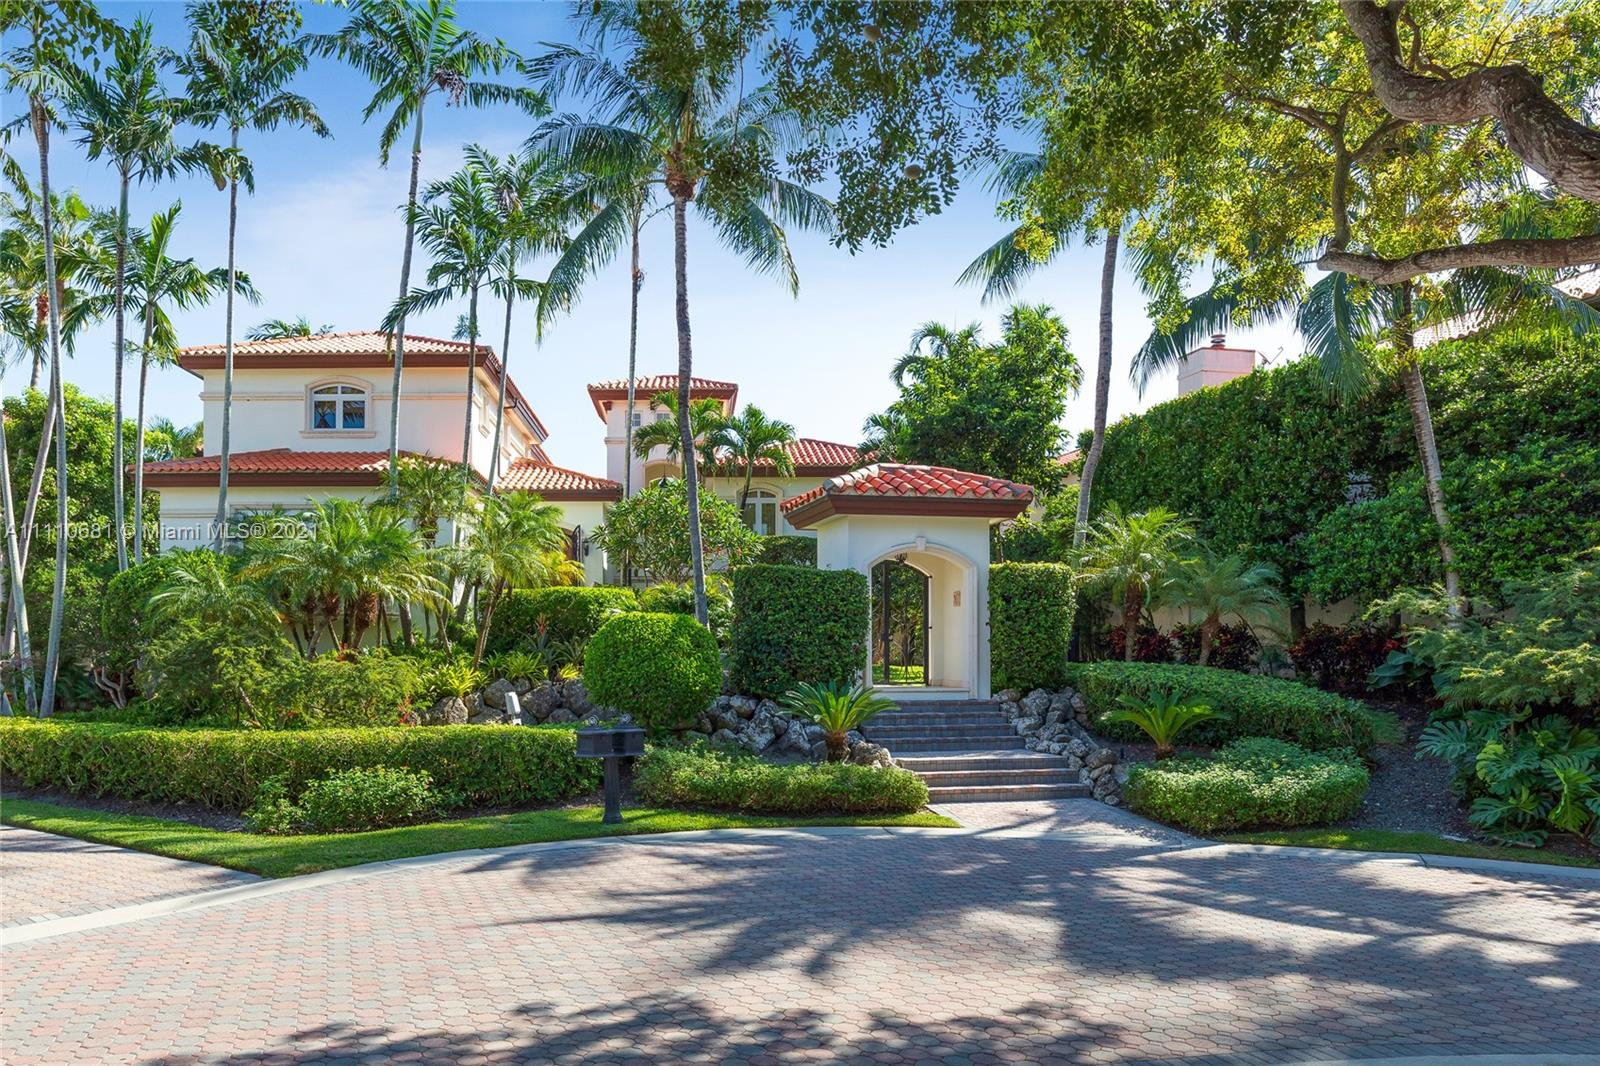 Retreat to one of the finest estate homes in the ultra private Deering Bay Yacht & Country Club in Coral Gables. With a double lot and sweeping views of the golf course, you can enjoy complete tranquility within your home or the world-class amenities just outside your door. This ideal family home has it all – 5 beds/6.5 baths including a primary suite with sitting area, a pool house, a full cabana bath, and a bonus office/den. The well-appointed kitchen with breakfast area opens to your wraparound terrace and family room for indoor/outdoor living. Formal living and dining rooms, three car garage, and elevator. The 220 acres of resort-style amenities include an Arnold Palmer signature golf course, tennis courts, clubhouse, fitness center, and marinas. Top public and private schools.